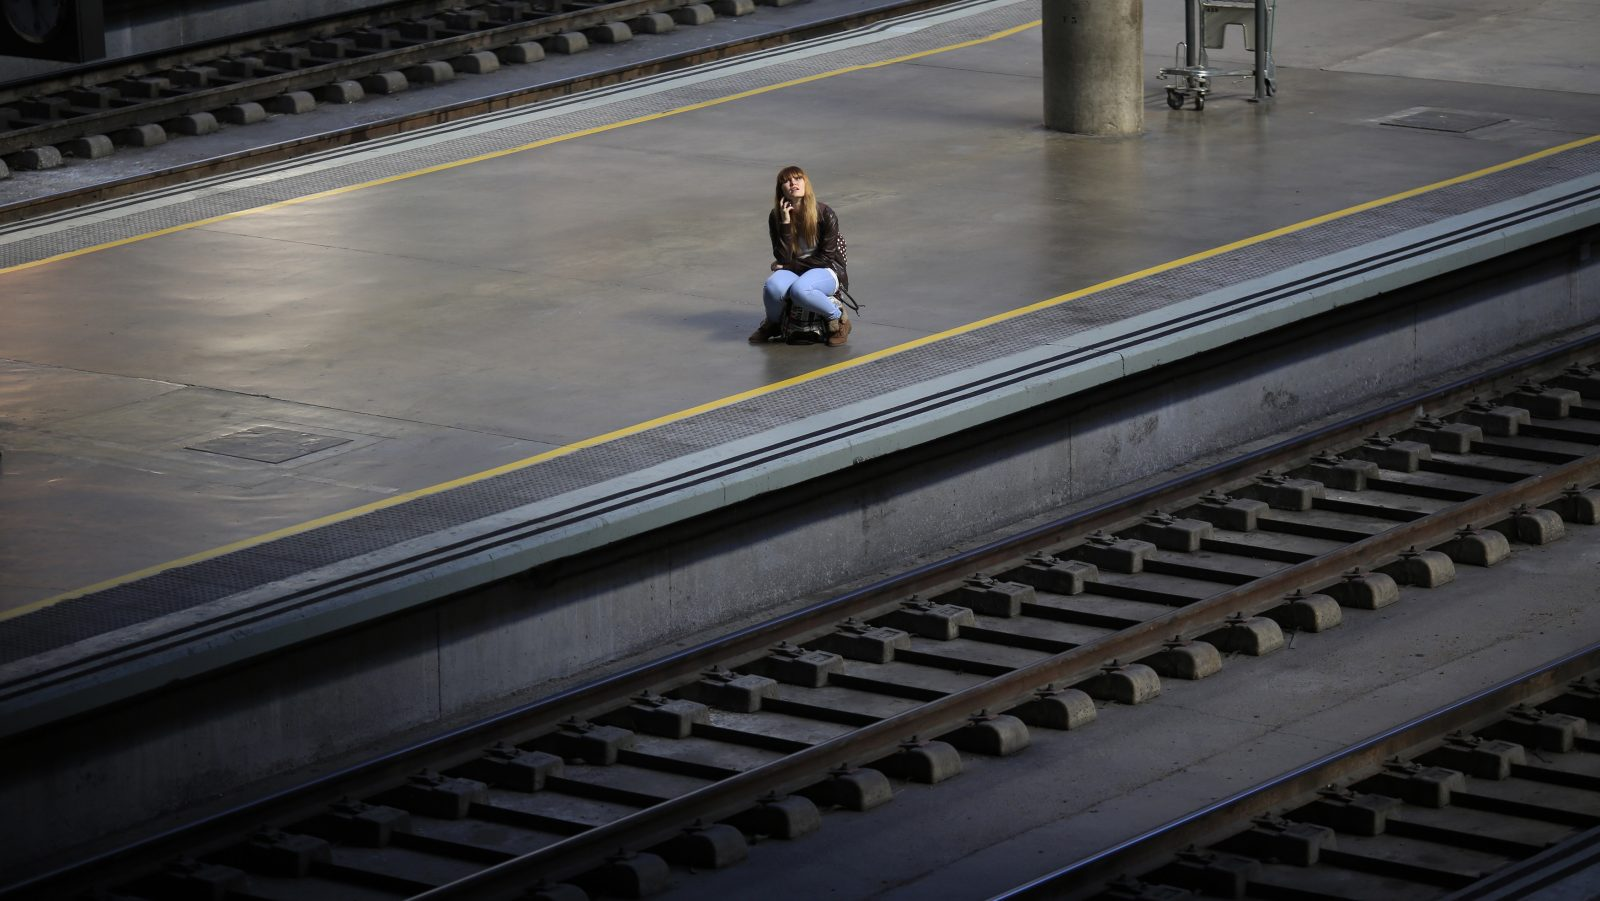 A woman sits on her suitcase as she waits for a train during a 24-hour nationwide train strike against the privatization plans of railways public companies Adif and Renfe at Santa Just train station in the Andalusian capital of Seville, southern Spain October 31, 2013. REUTERS/Marcelo del Pozo (SPAIN - Tags: BUSINESS CIVIL UNREST EMPLOYMENT TRANSPORT TPX IMAGES OF THE DAY) - RTX14UY7